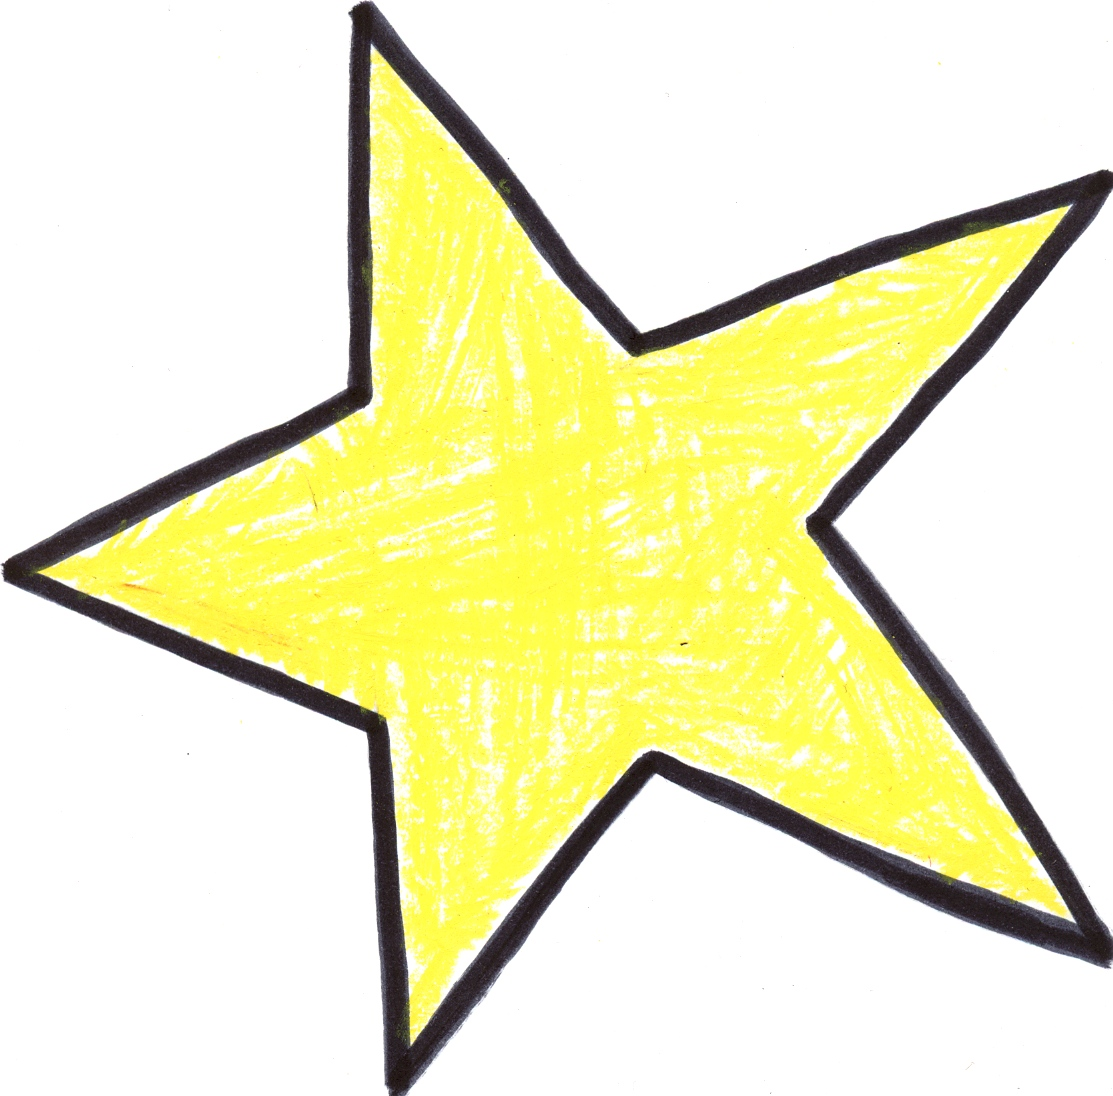 Arrow filled with stars clipart. Large hand drawn star